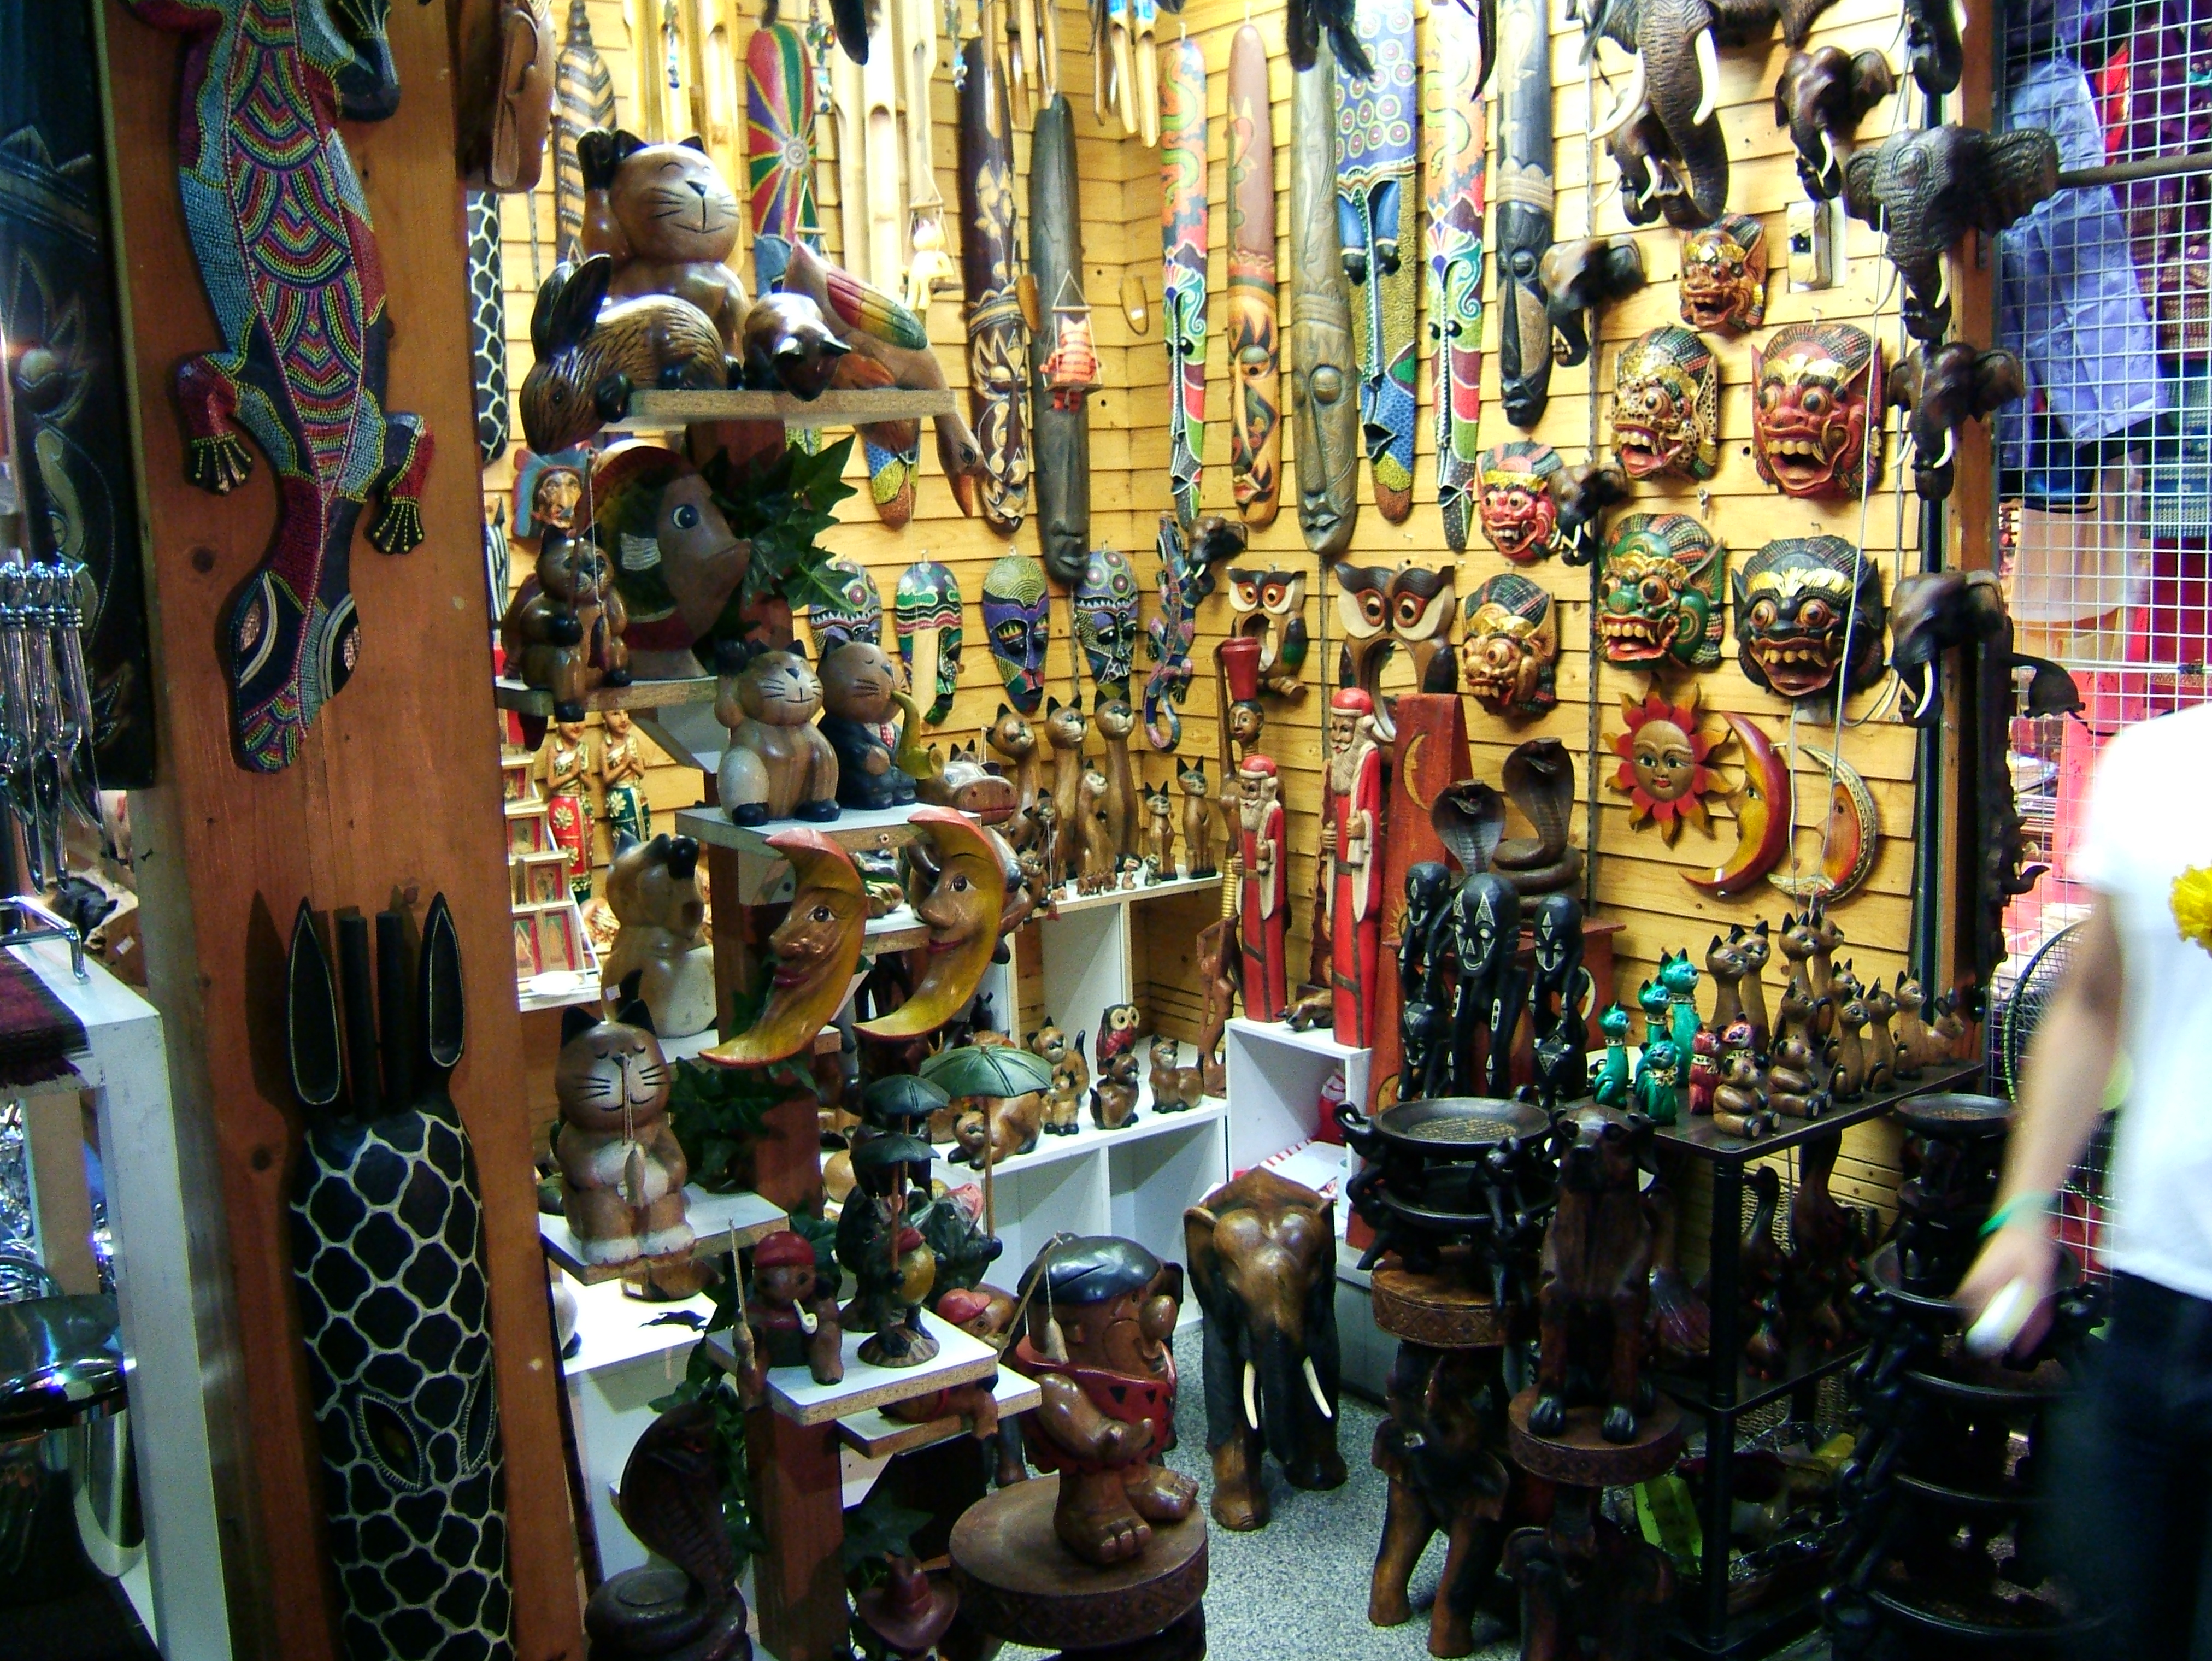 Thailands retail businesses arts and crafts trade Oct 2005 02